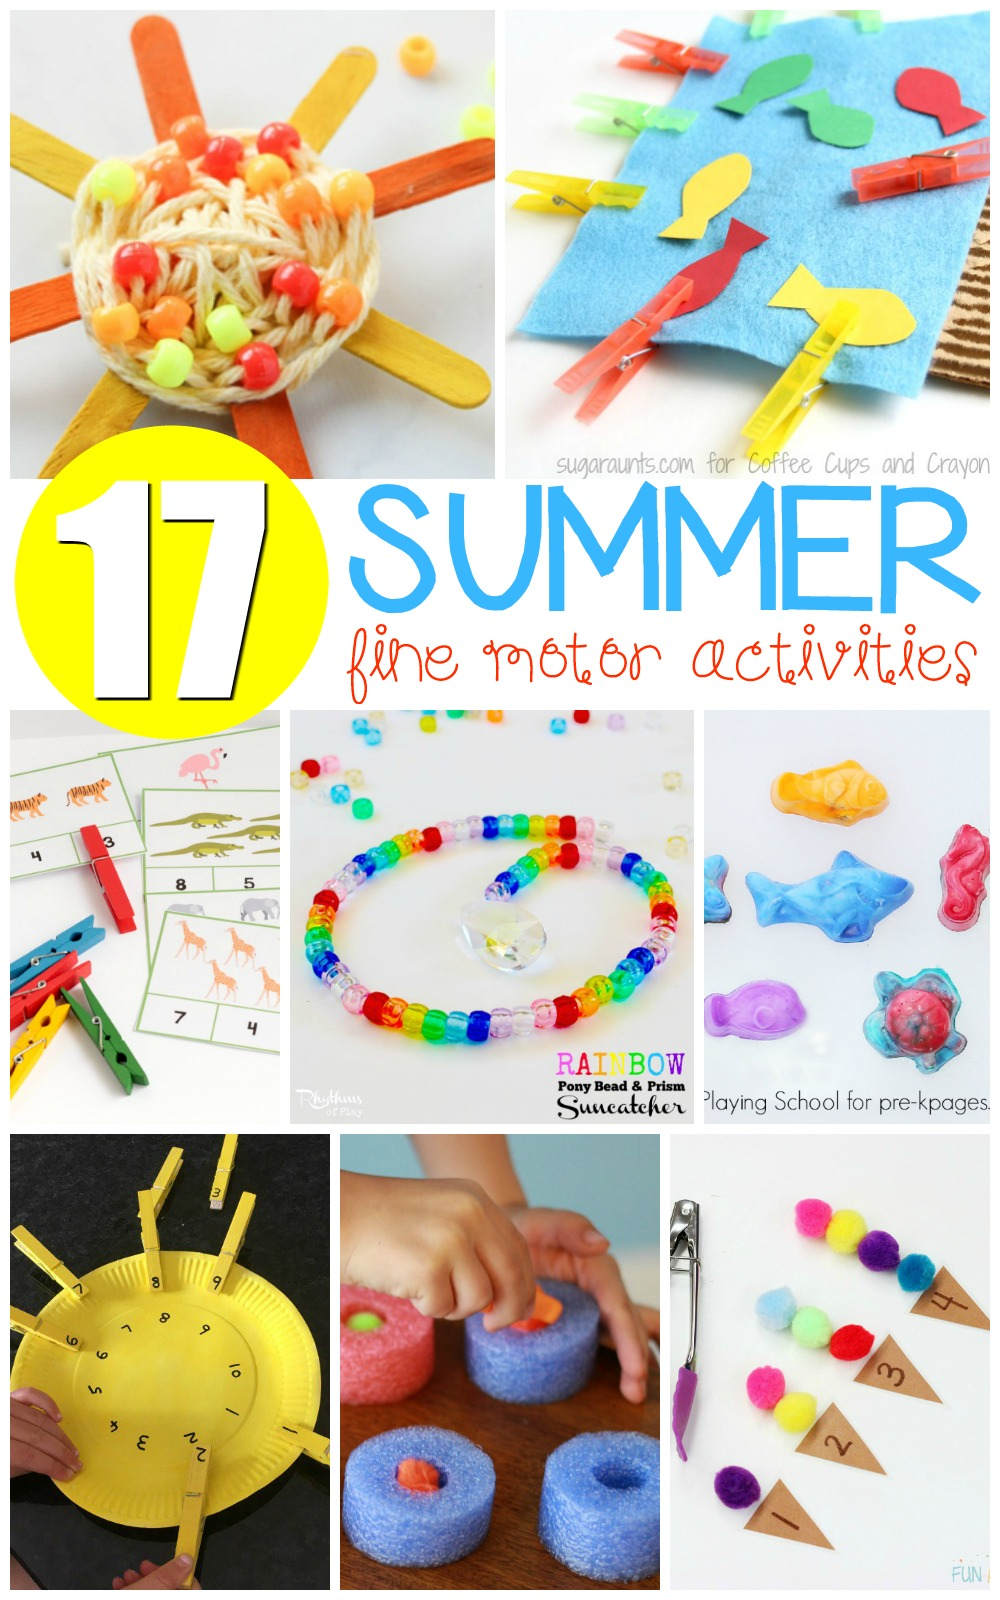 These summer fine motor activities will help kids improve fine motor skills that will help with skills like writing, cutting, drawing, coloring, and more!